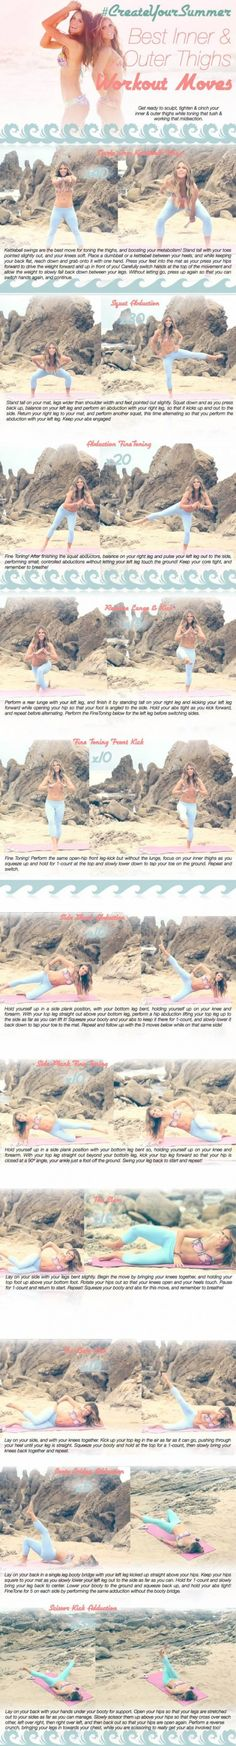 Sculpt, tighten and cinch those thighs with your NEW Inner & Outer Thigh Workout Routine!!! #BIKINISERIES